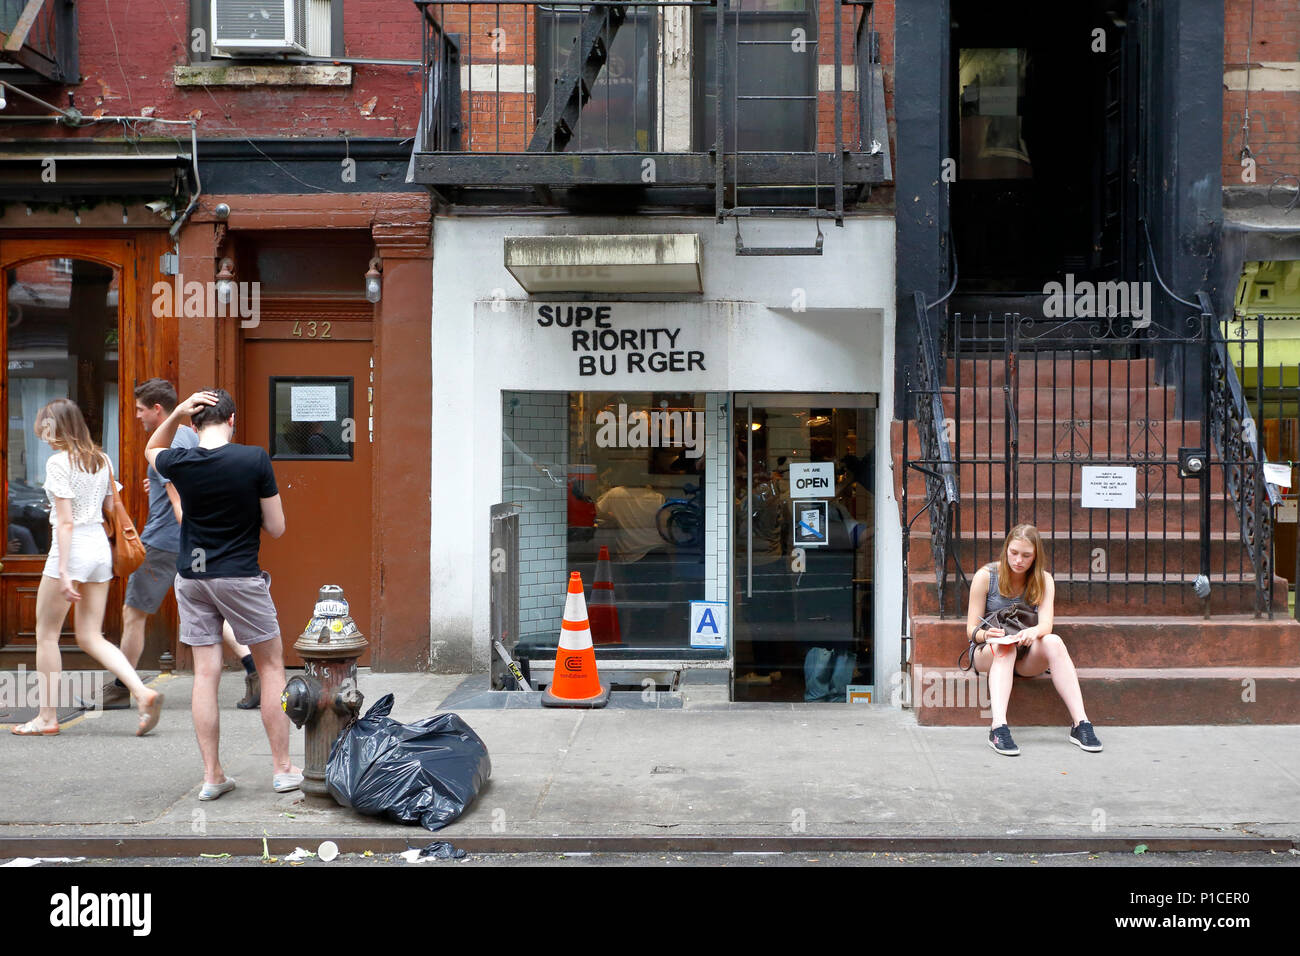 Superiority Burger, 430 E 9th St, New York, NY - Stock Image